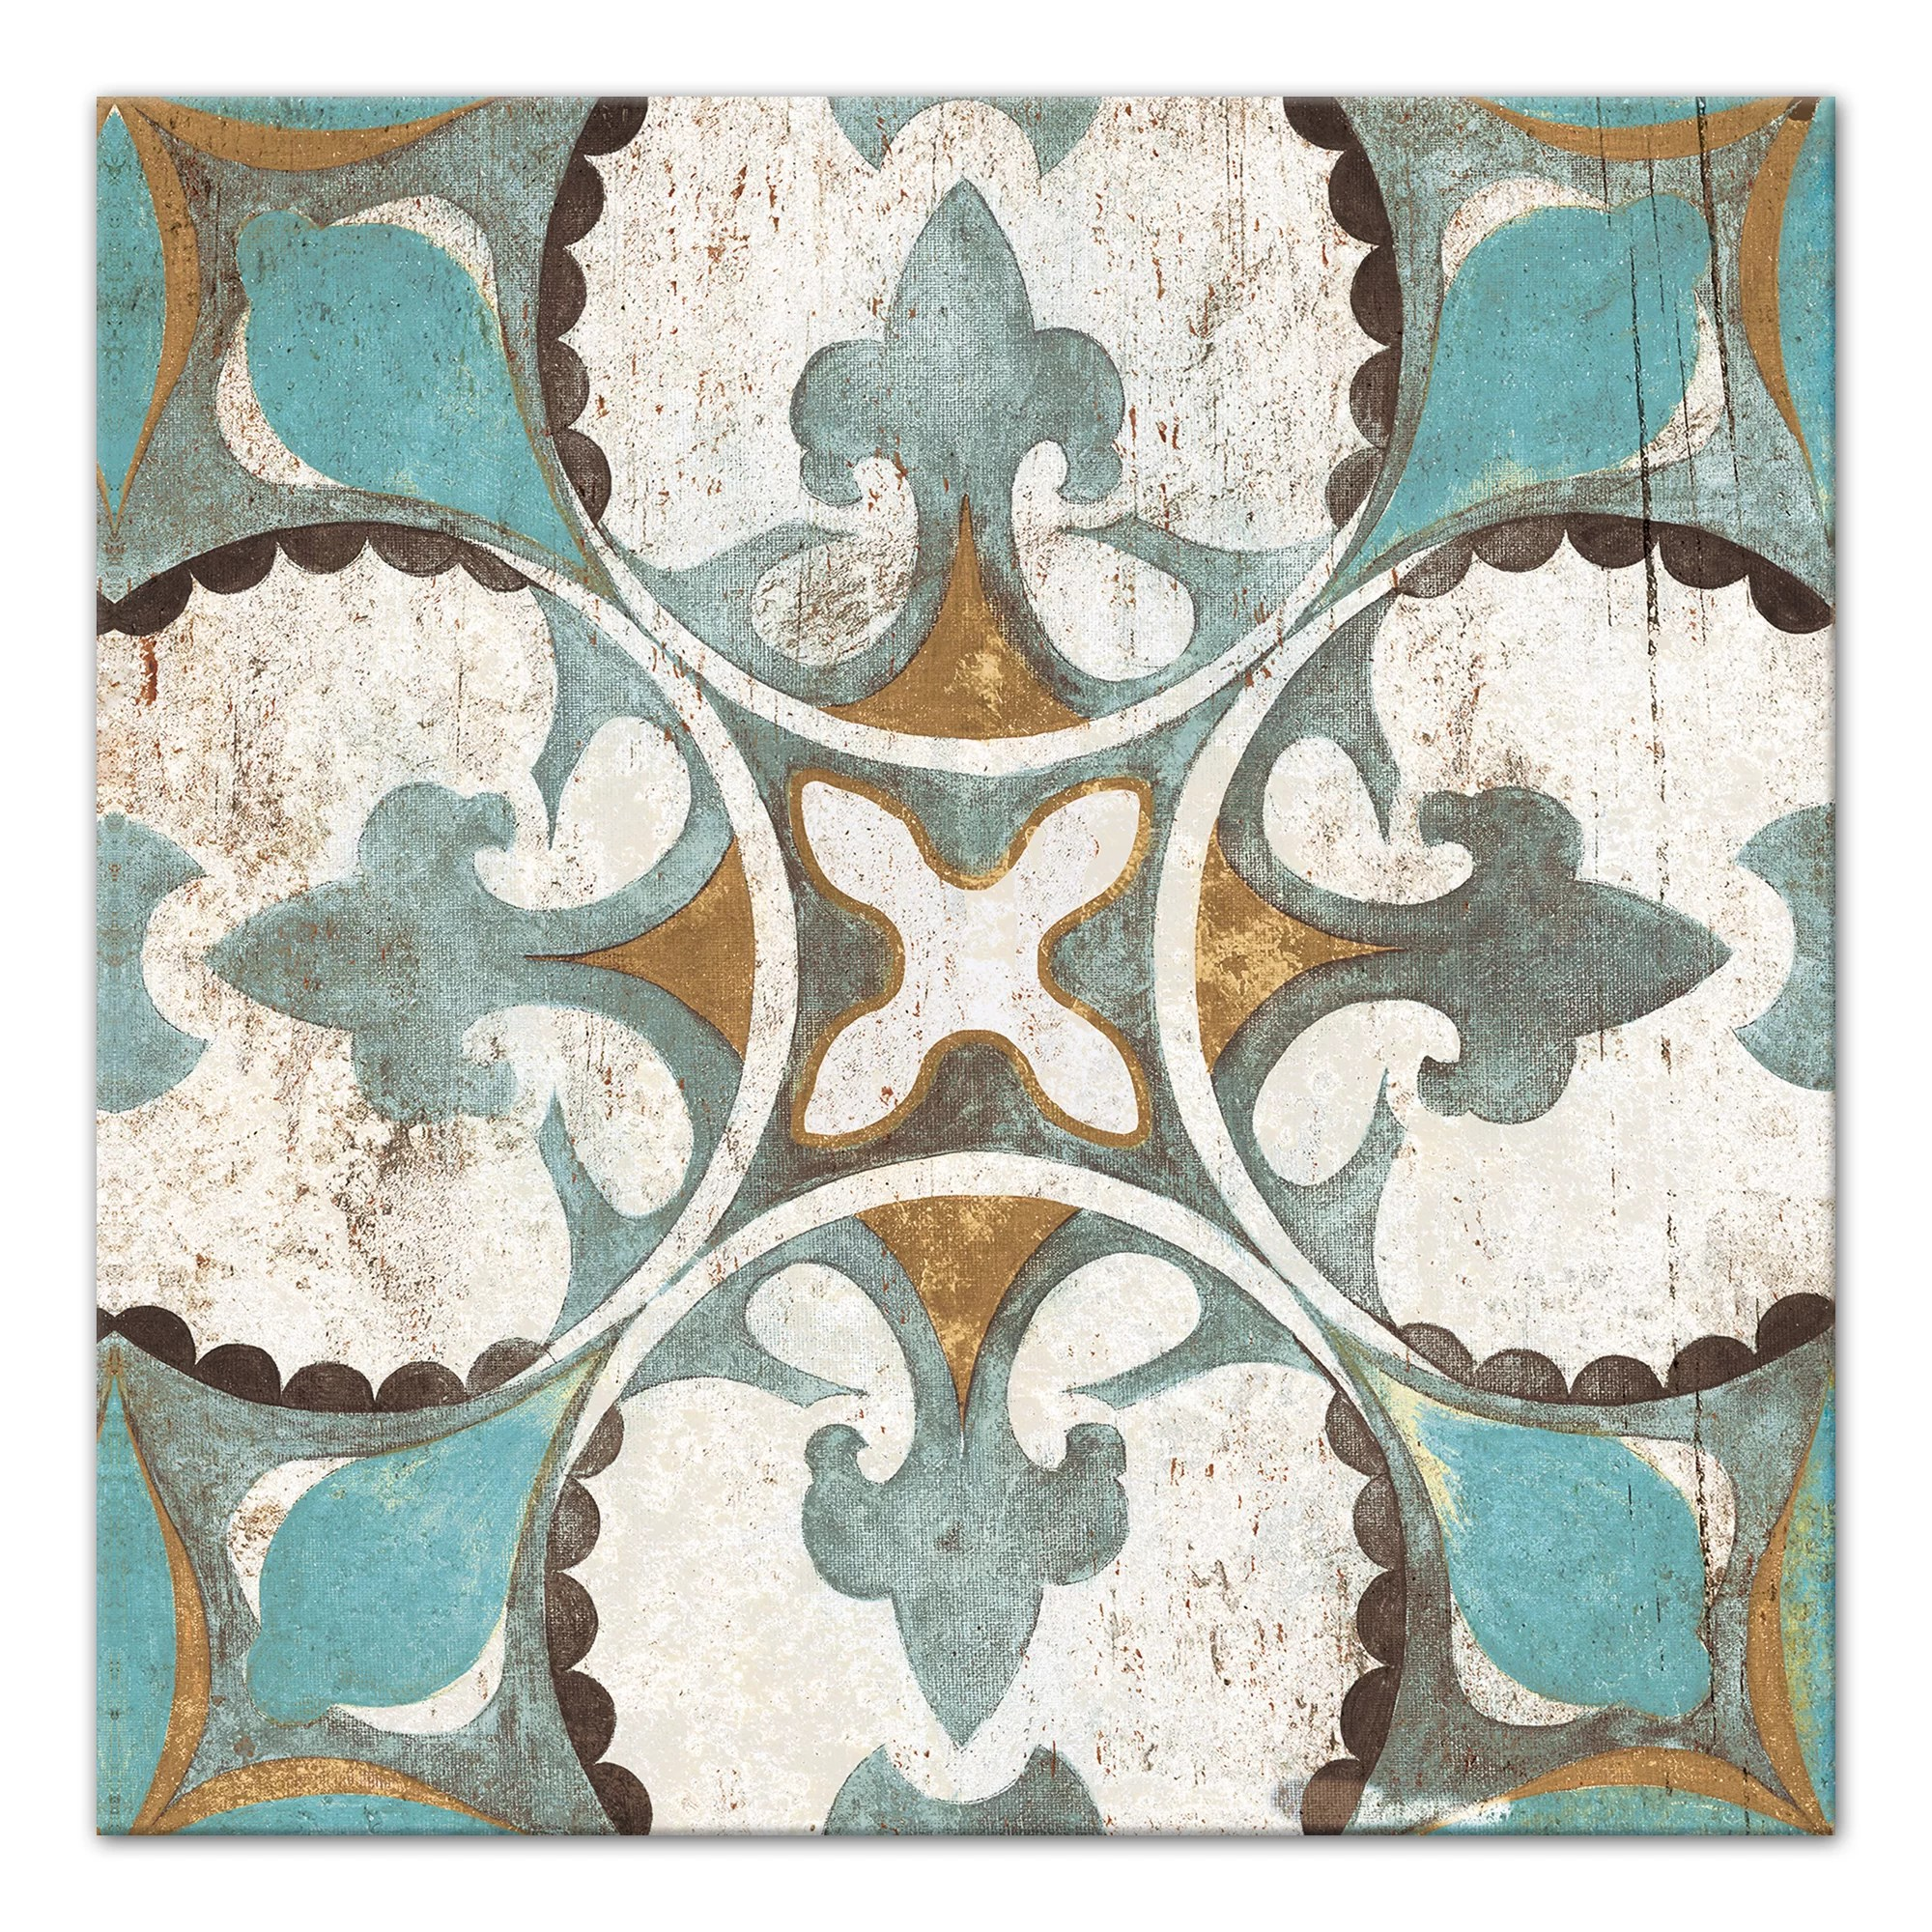 distressed moroccan tile acrylic painting print on canvas